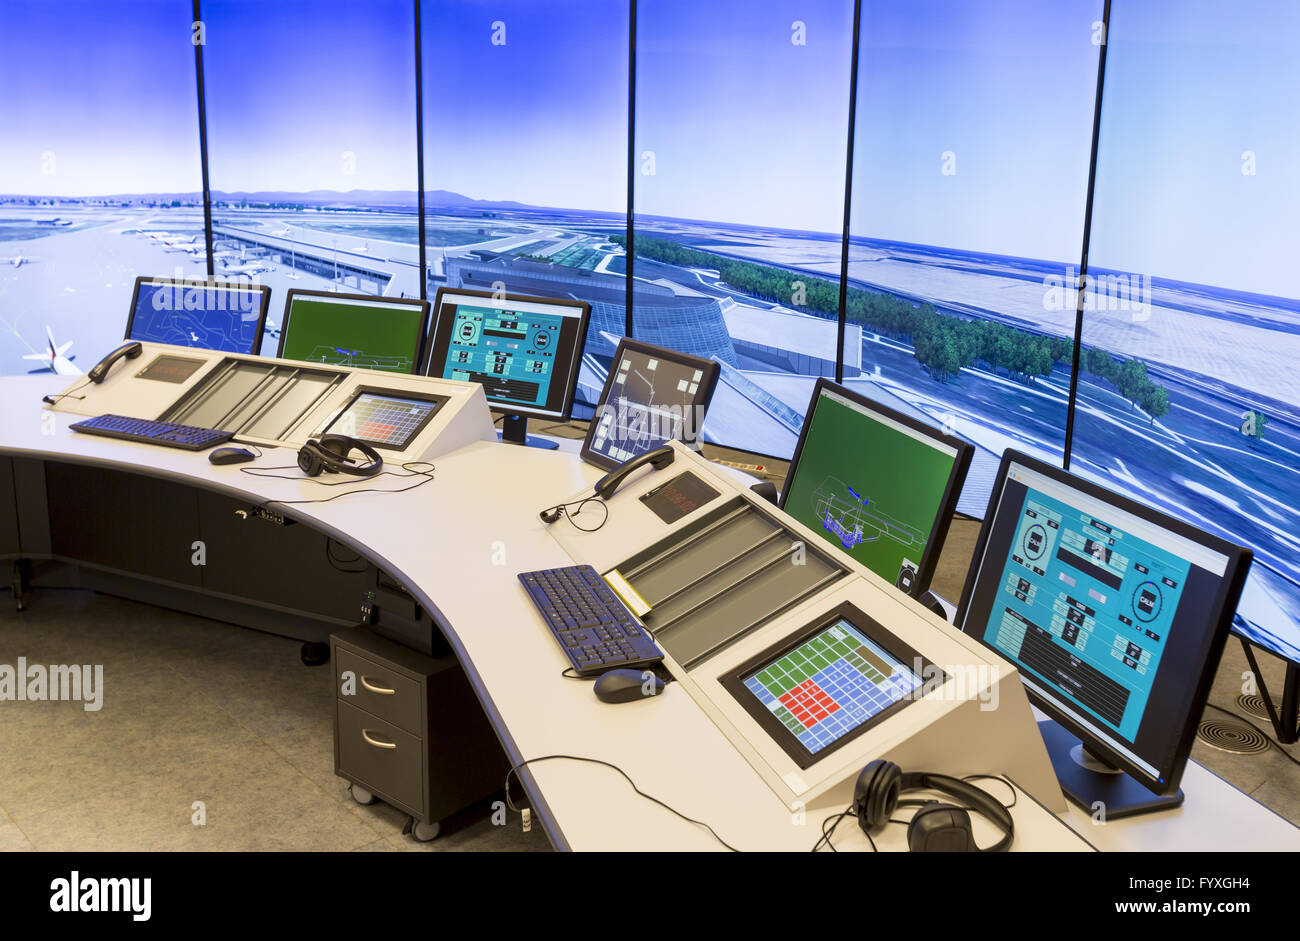 Air Traffic Services Authority - Stock Image